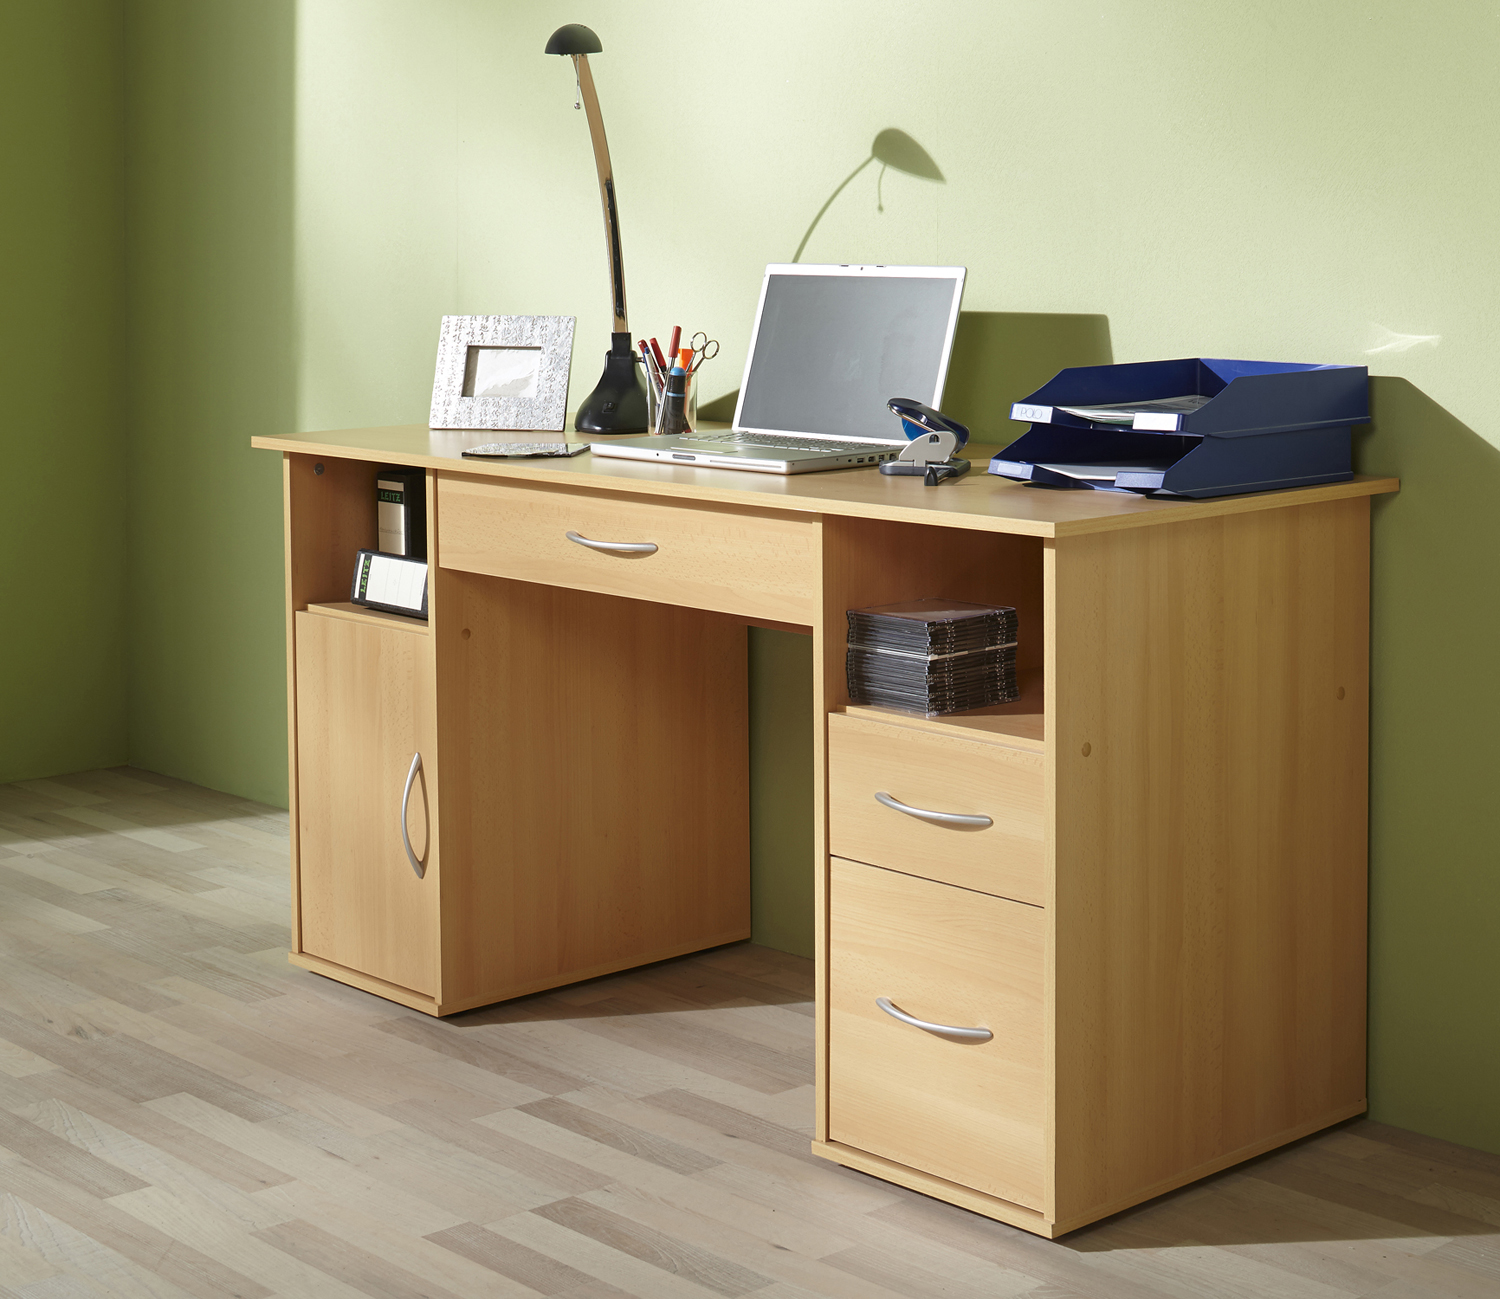 schreibtisch workstation computertisch tisch mod w033 weiss buche sonoma eiche ebay. Black Bedroom Furniture Sets. Home Design Ideas